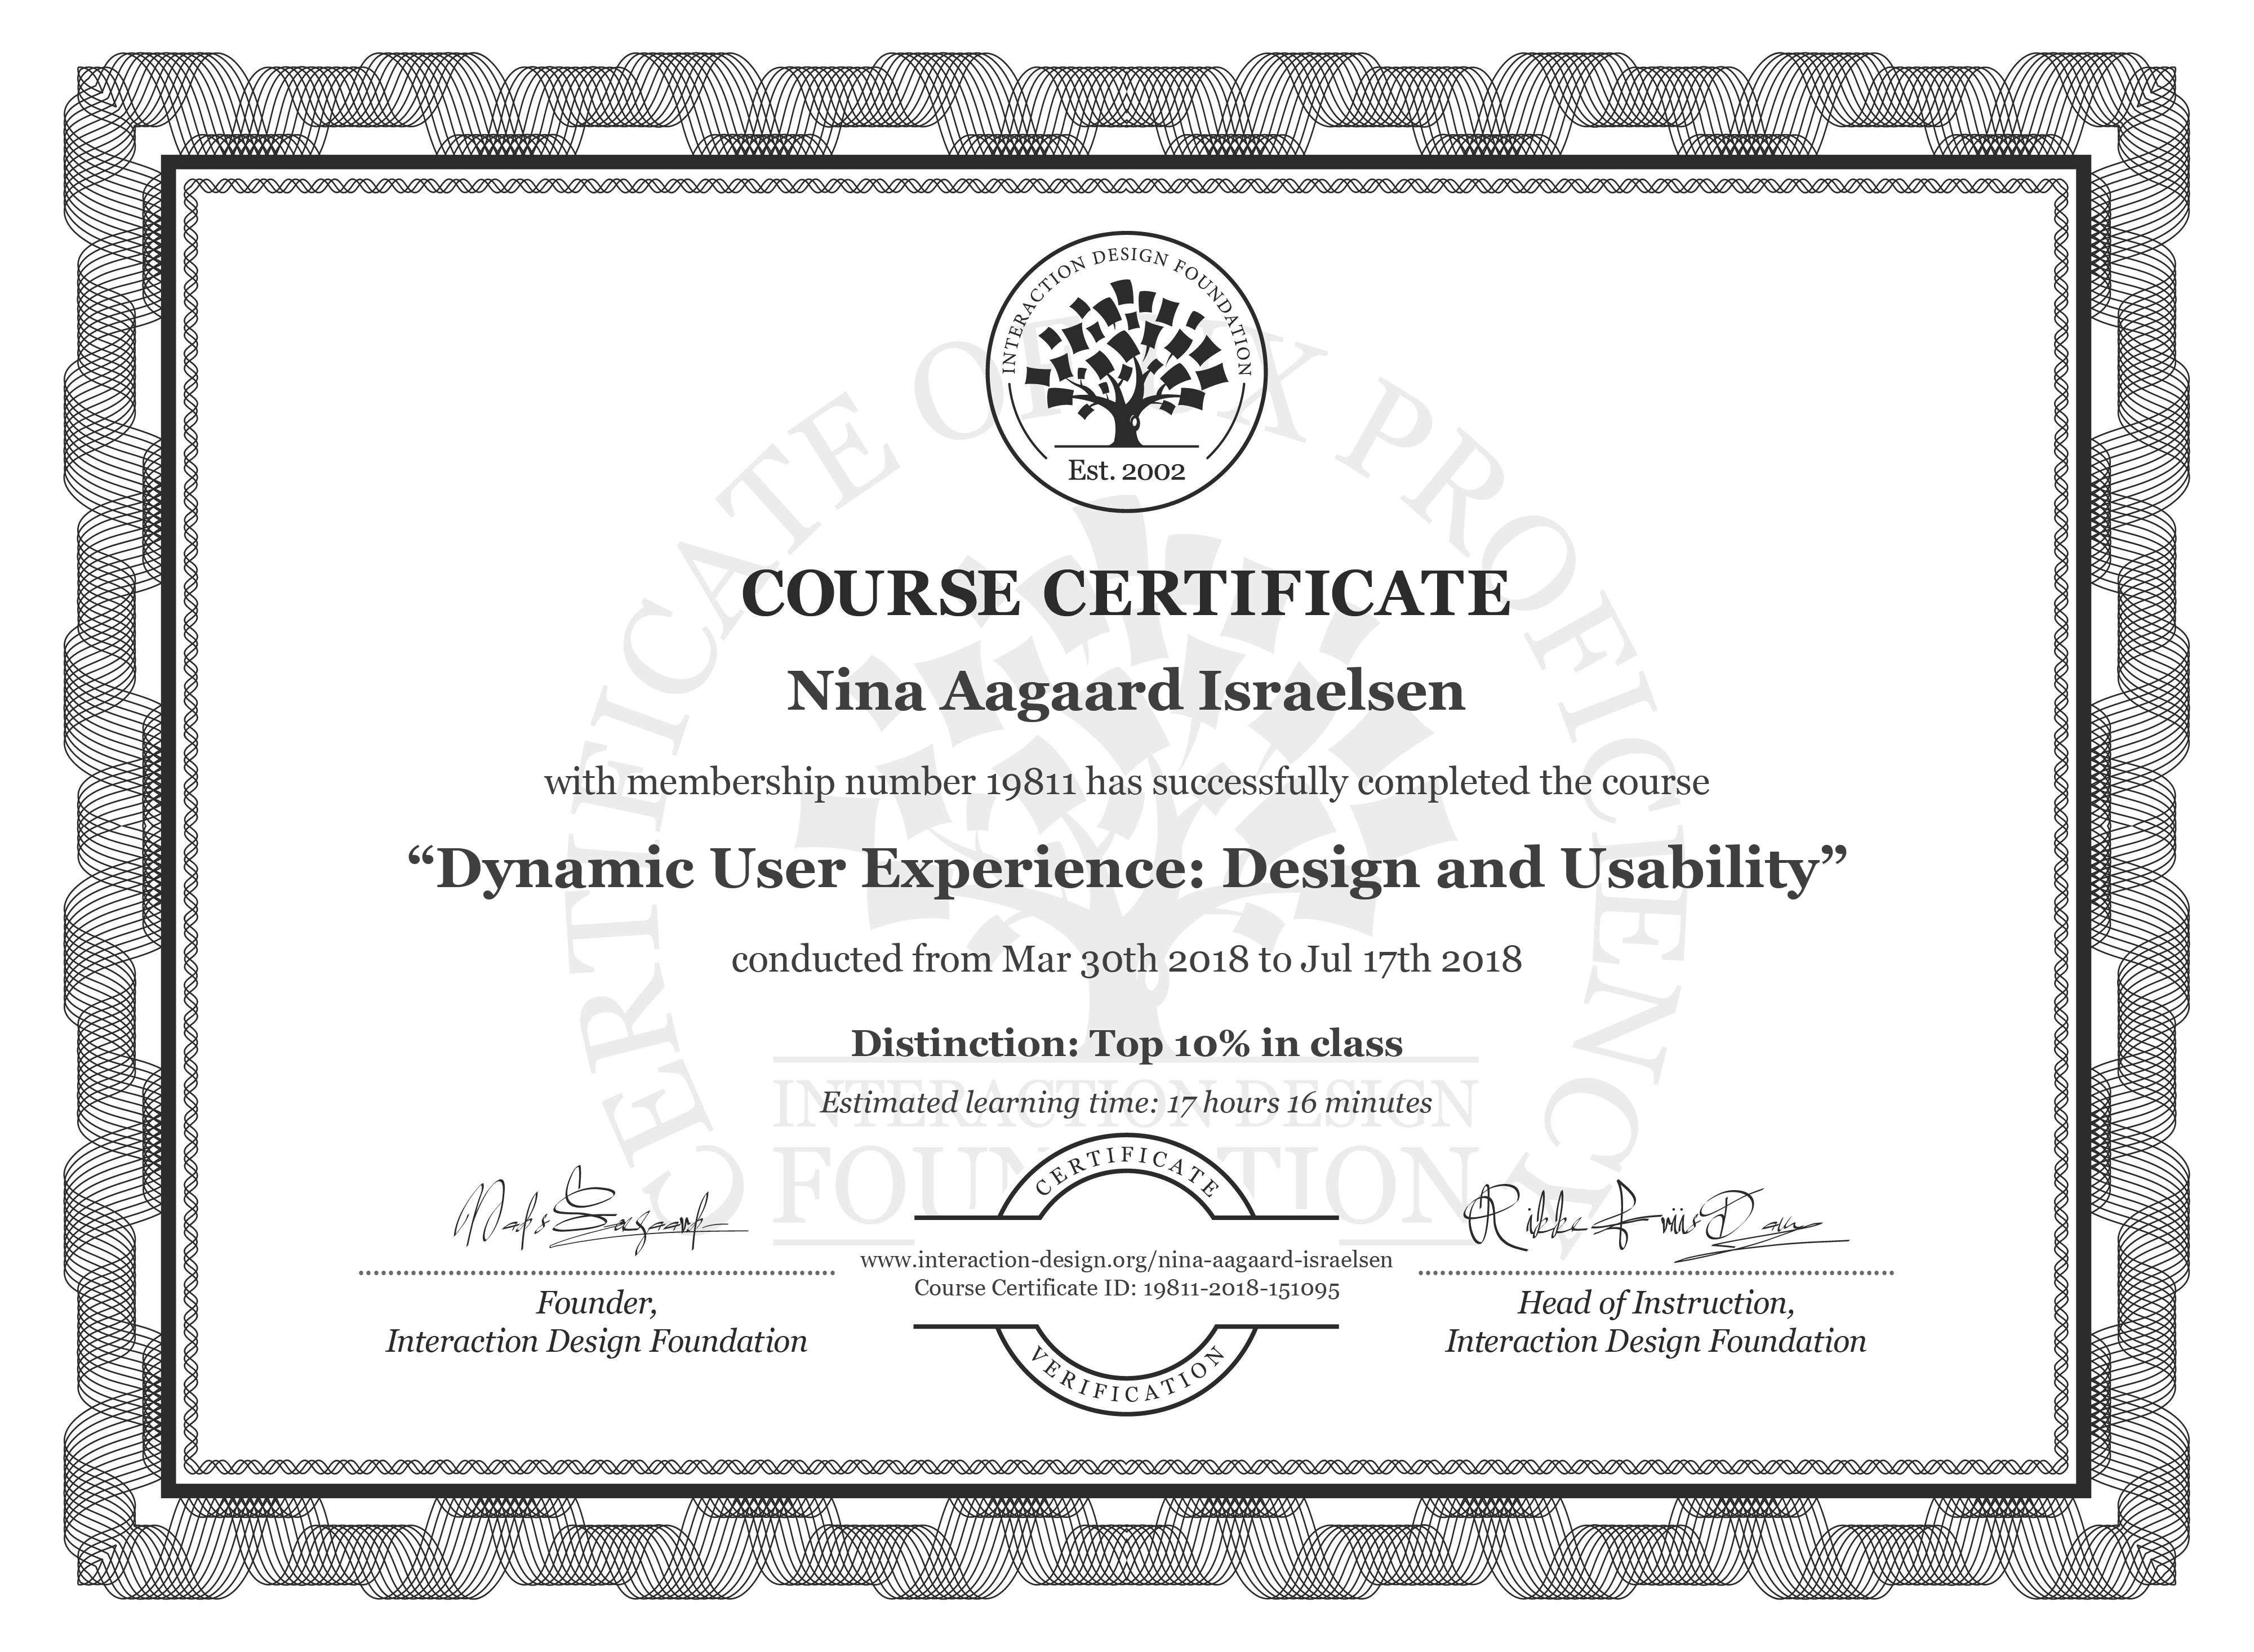 Nina Aagaard Israelsen's Course Certificate: Dynamic User Experience: Design and Usability